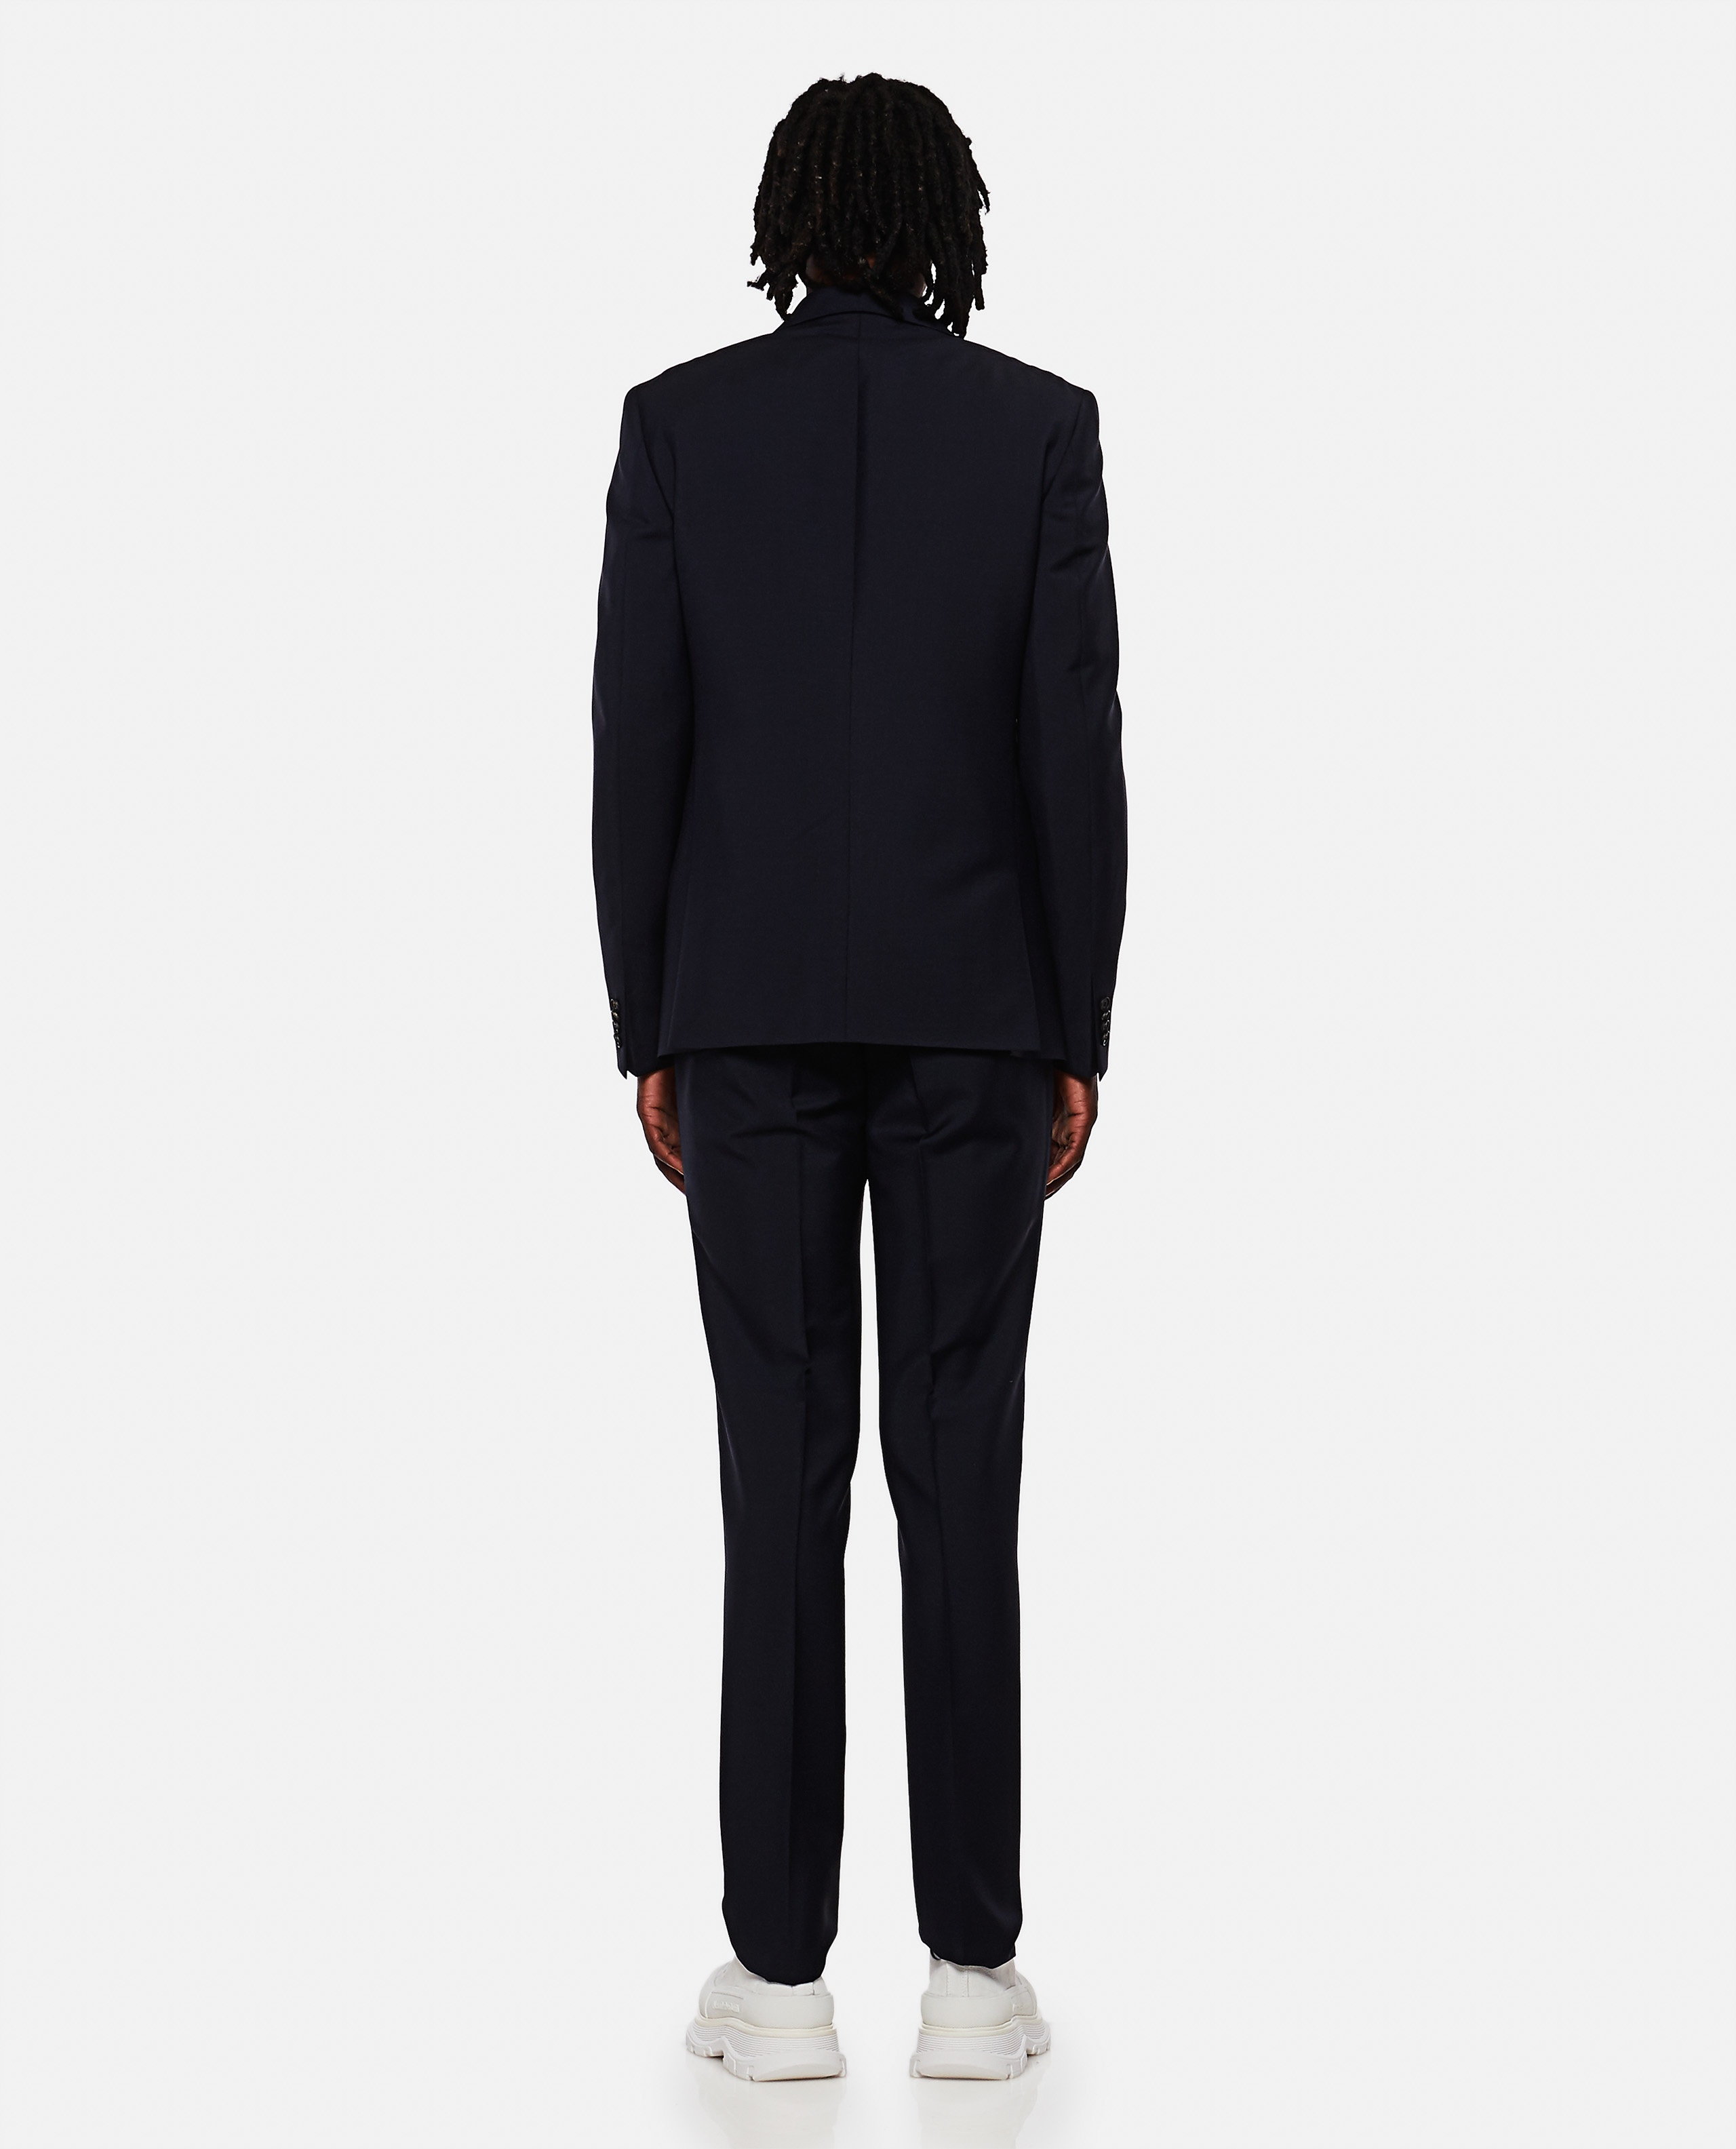 Single-breasted suit Men Givenchy 000252990037385 3